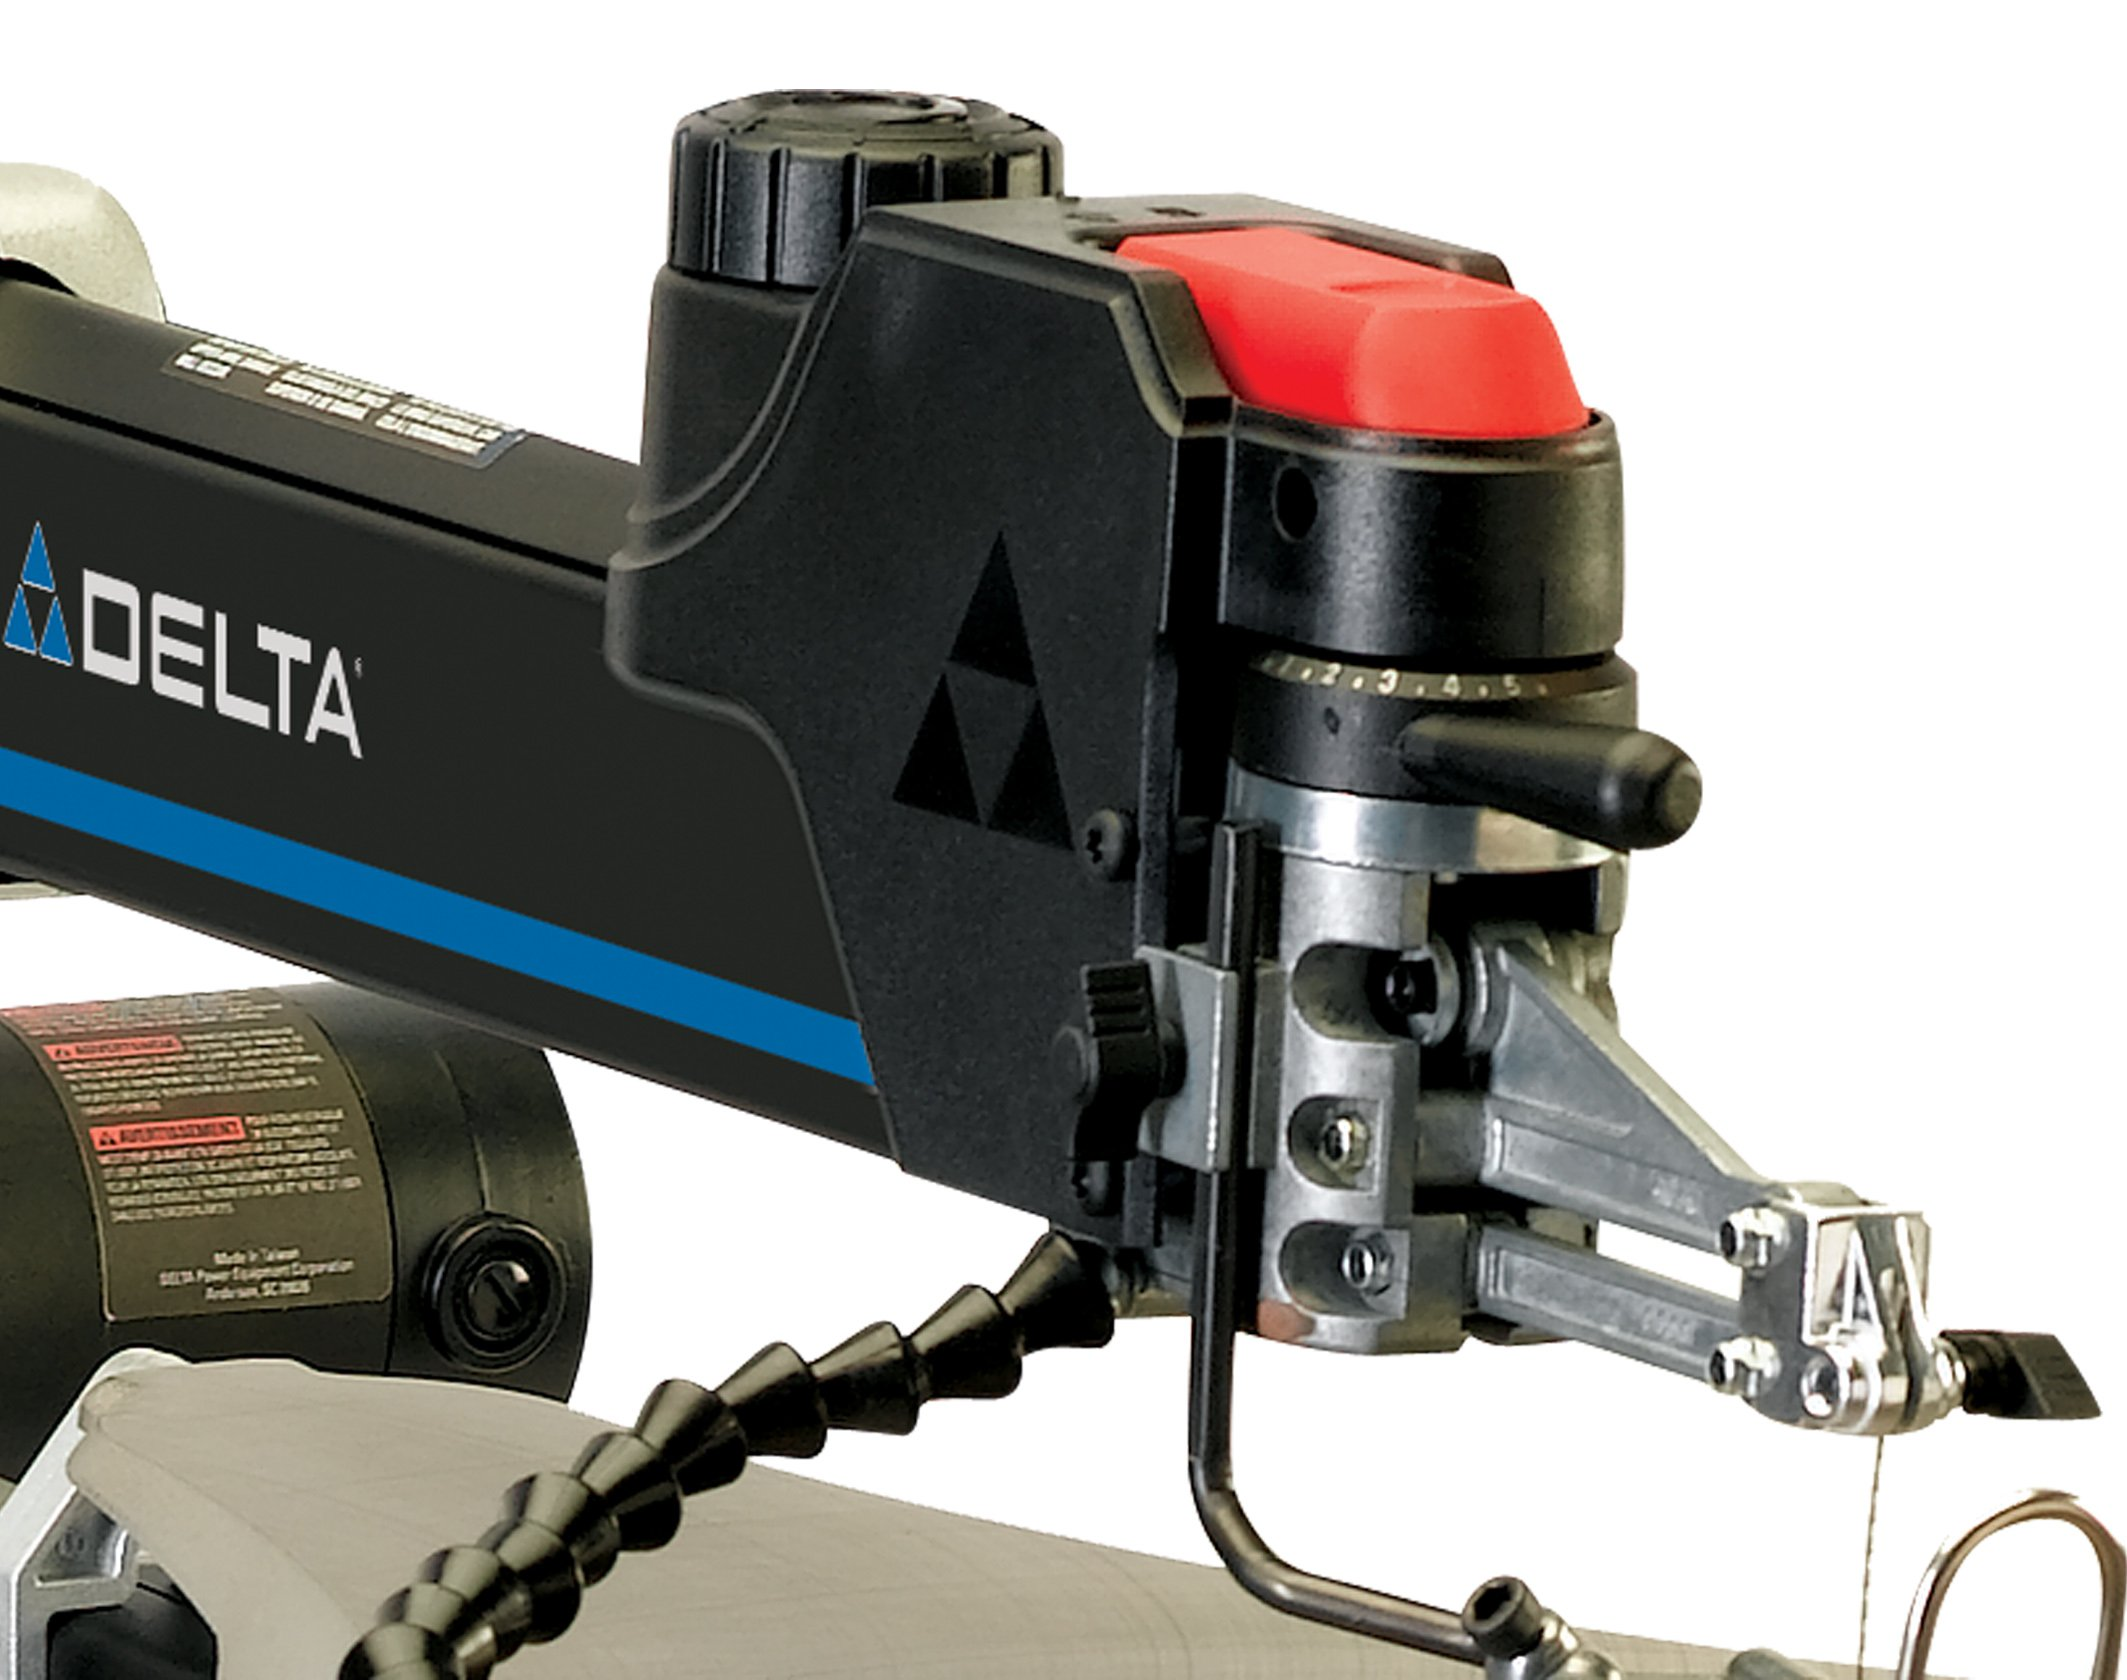 Delta Power Tools 40-694 20 In. Variable Speed Scroll Saw by Delta (Image #2)